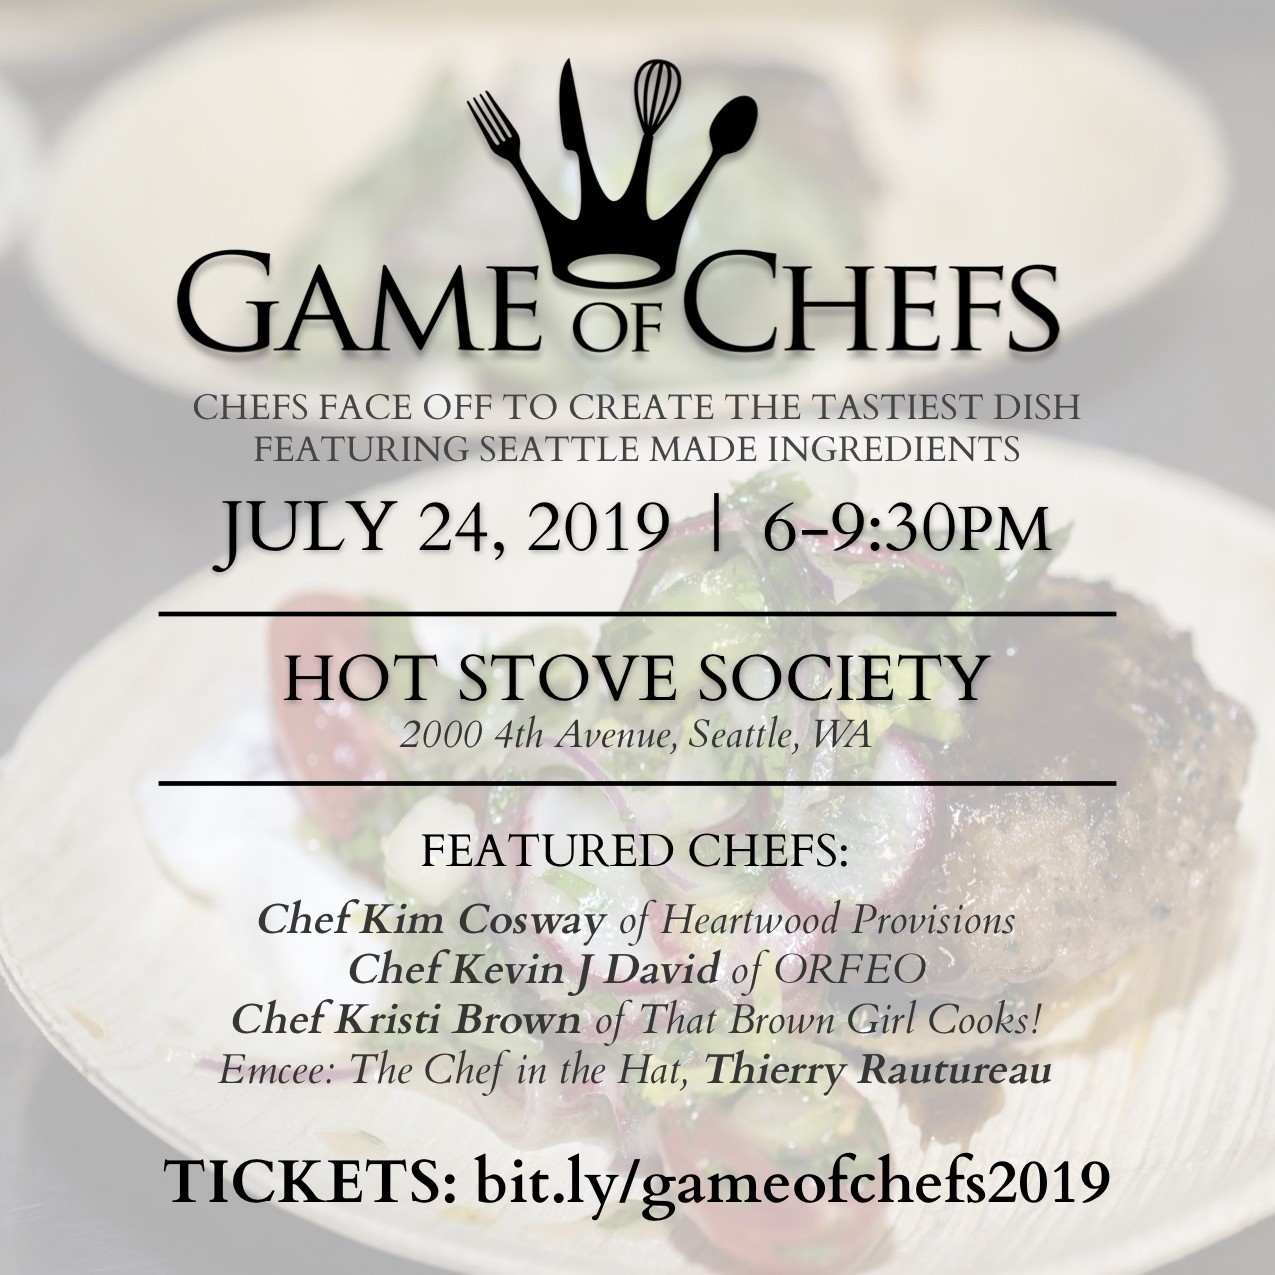 We're thrilled to be participating in Seattle Good Business Network's 3rd Annual Game of Chefs! Three talented chefs to create tasty and innovative dishes from a basket of Seattle Made products and a locally sourced pantry. Buy your tickets now for the tasting event of the season on July 24th at Hot Stove Society: http://bit.ly/gameofchefs19  Of course  Thierry Rautureau  our very own Chef in The Hat will be hosting the competition!  Join us at  Hot Stove Society  for heavy apps, local drinks, and handcrafted goodies:. Can't wait to see you!  VIP Admission is available.  VIP Tickets include valet parking at Hotel Andra, early event admission at 5:30 pm ( be the first to try our signature drinks and appetizers), a meet and greet with the chefs and a VIP gift bag.